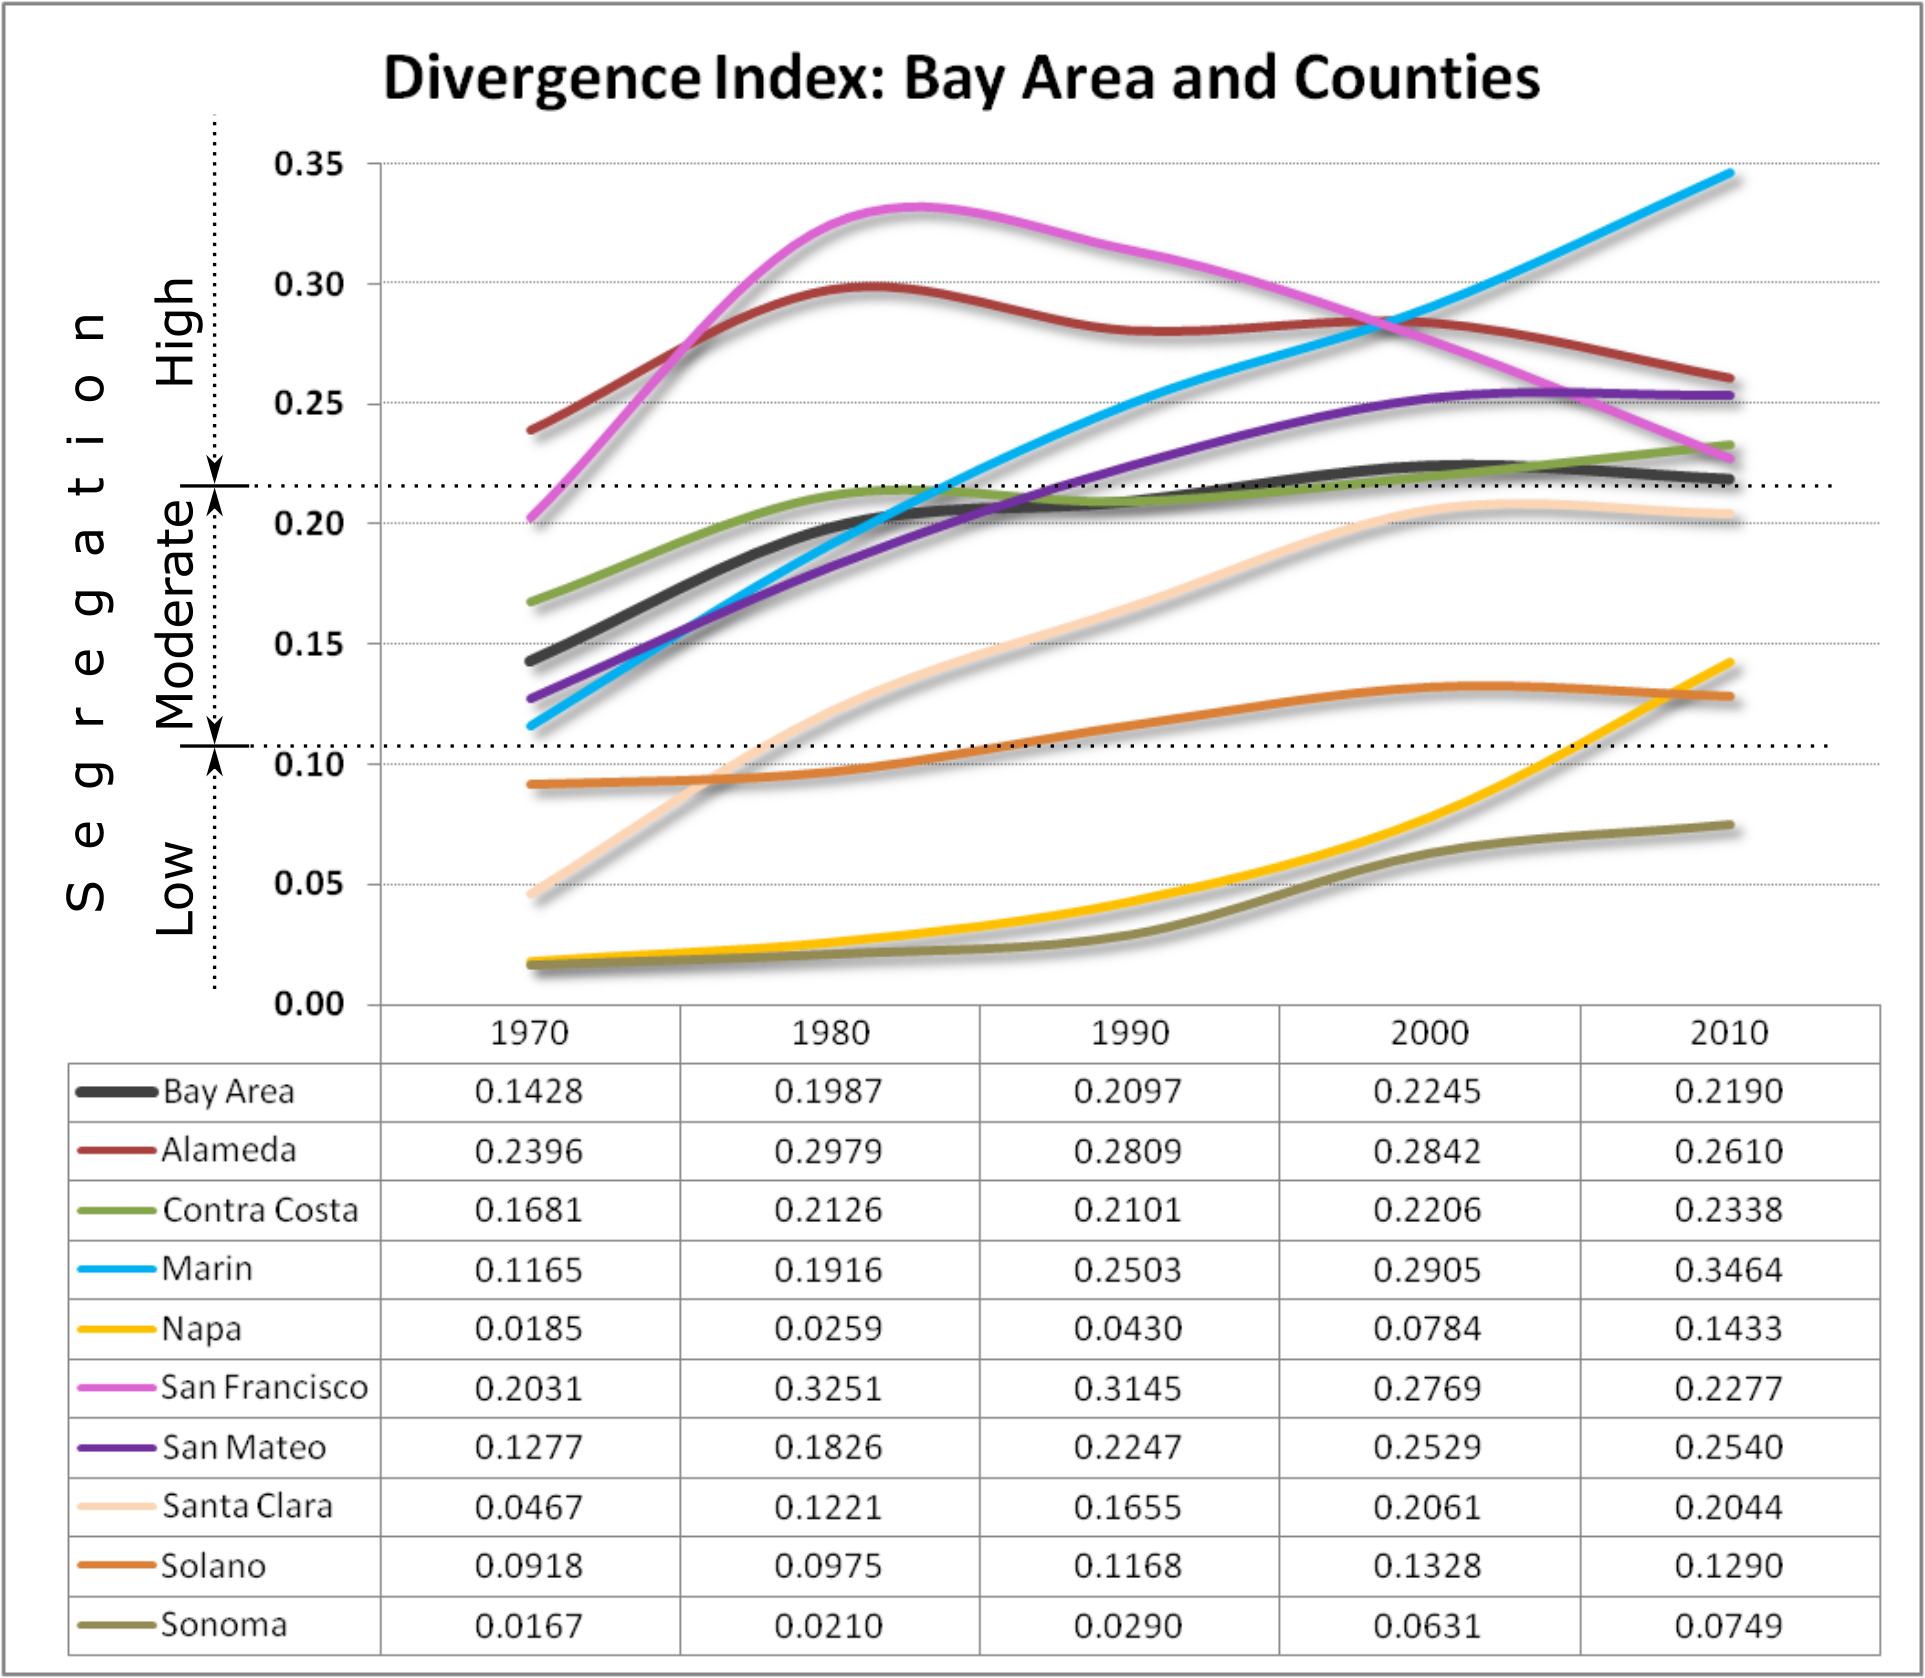 The following chart illustrates the divergence scores for each county and for the entire Bay Area, from 1970 to 2010.